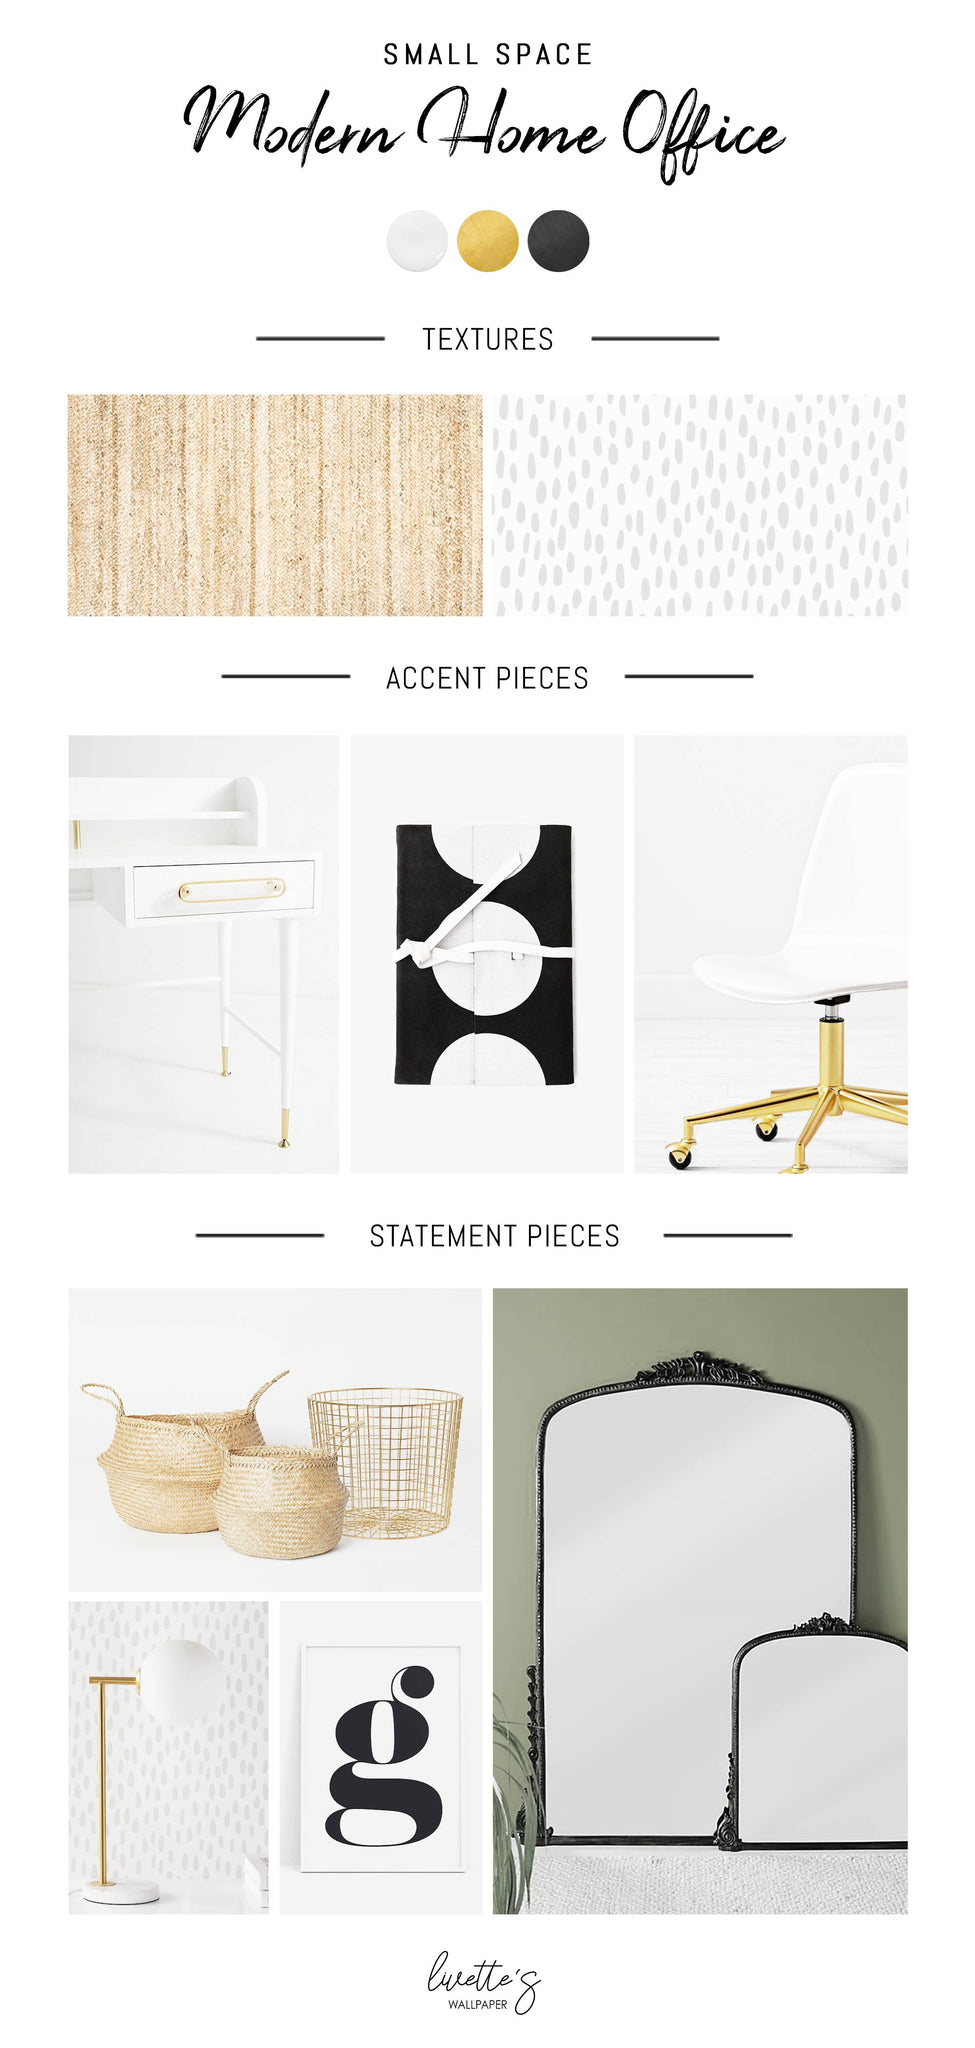 Small space home office design mood board